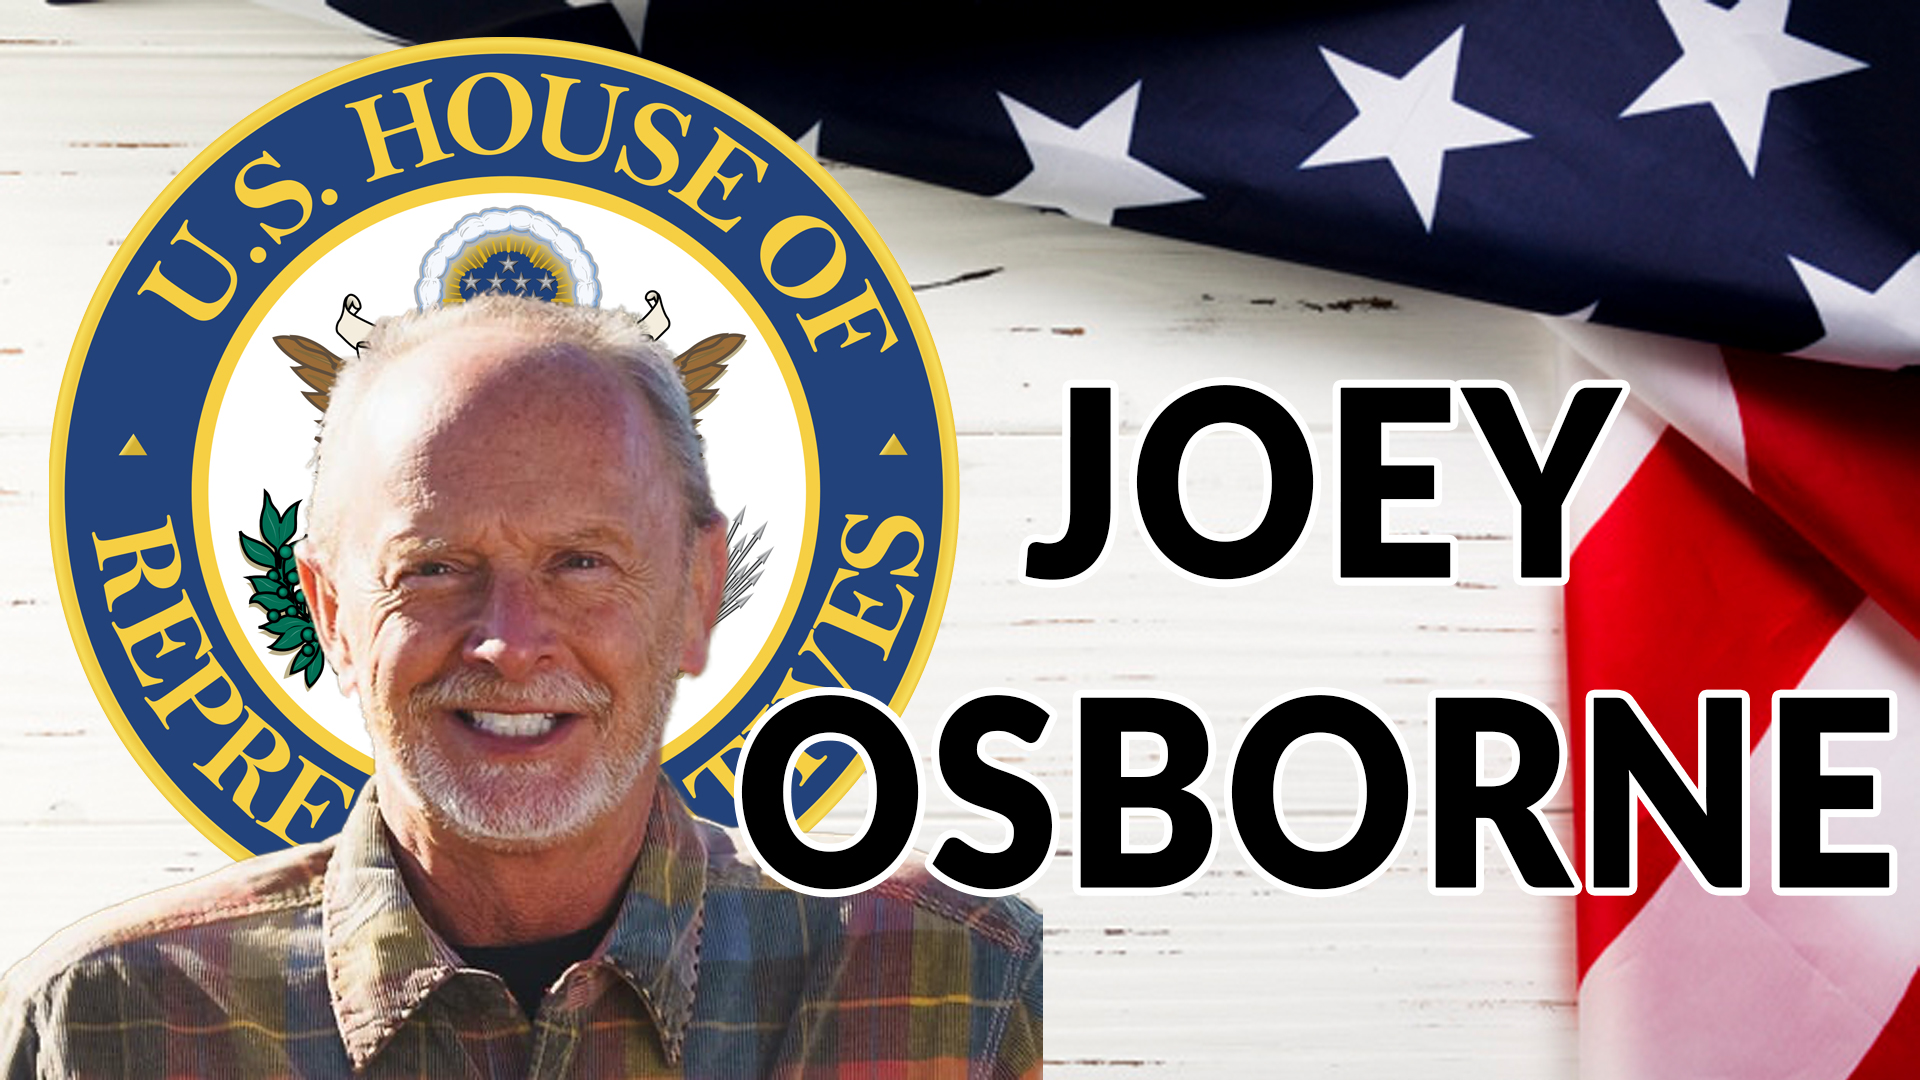 JOEY OSBORNE FOR US HOUSE OF REPRESENTATIVES | AREN 145